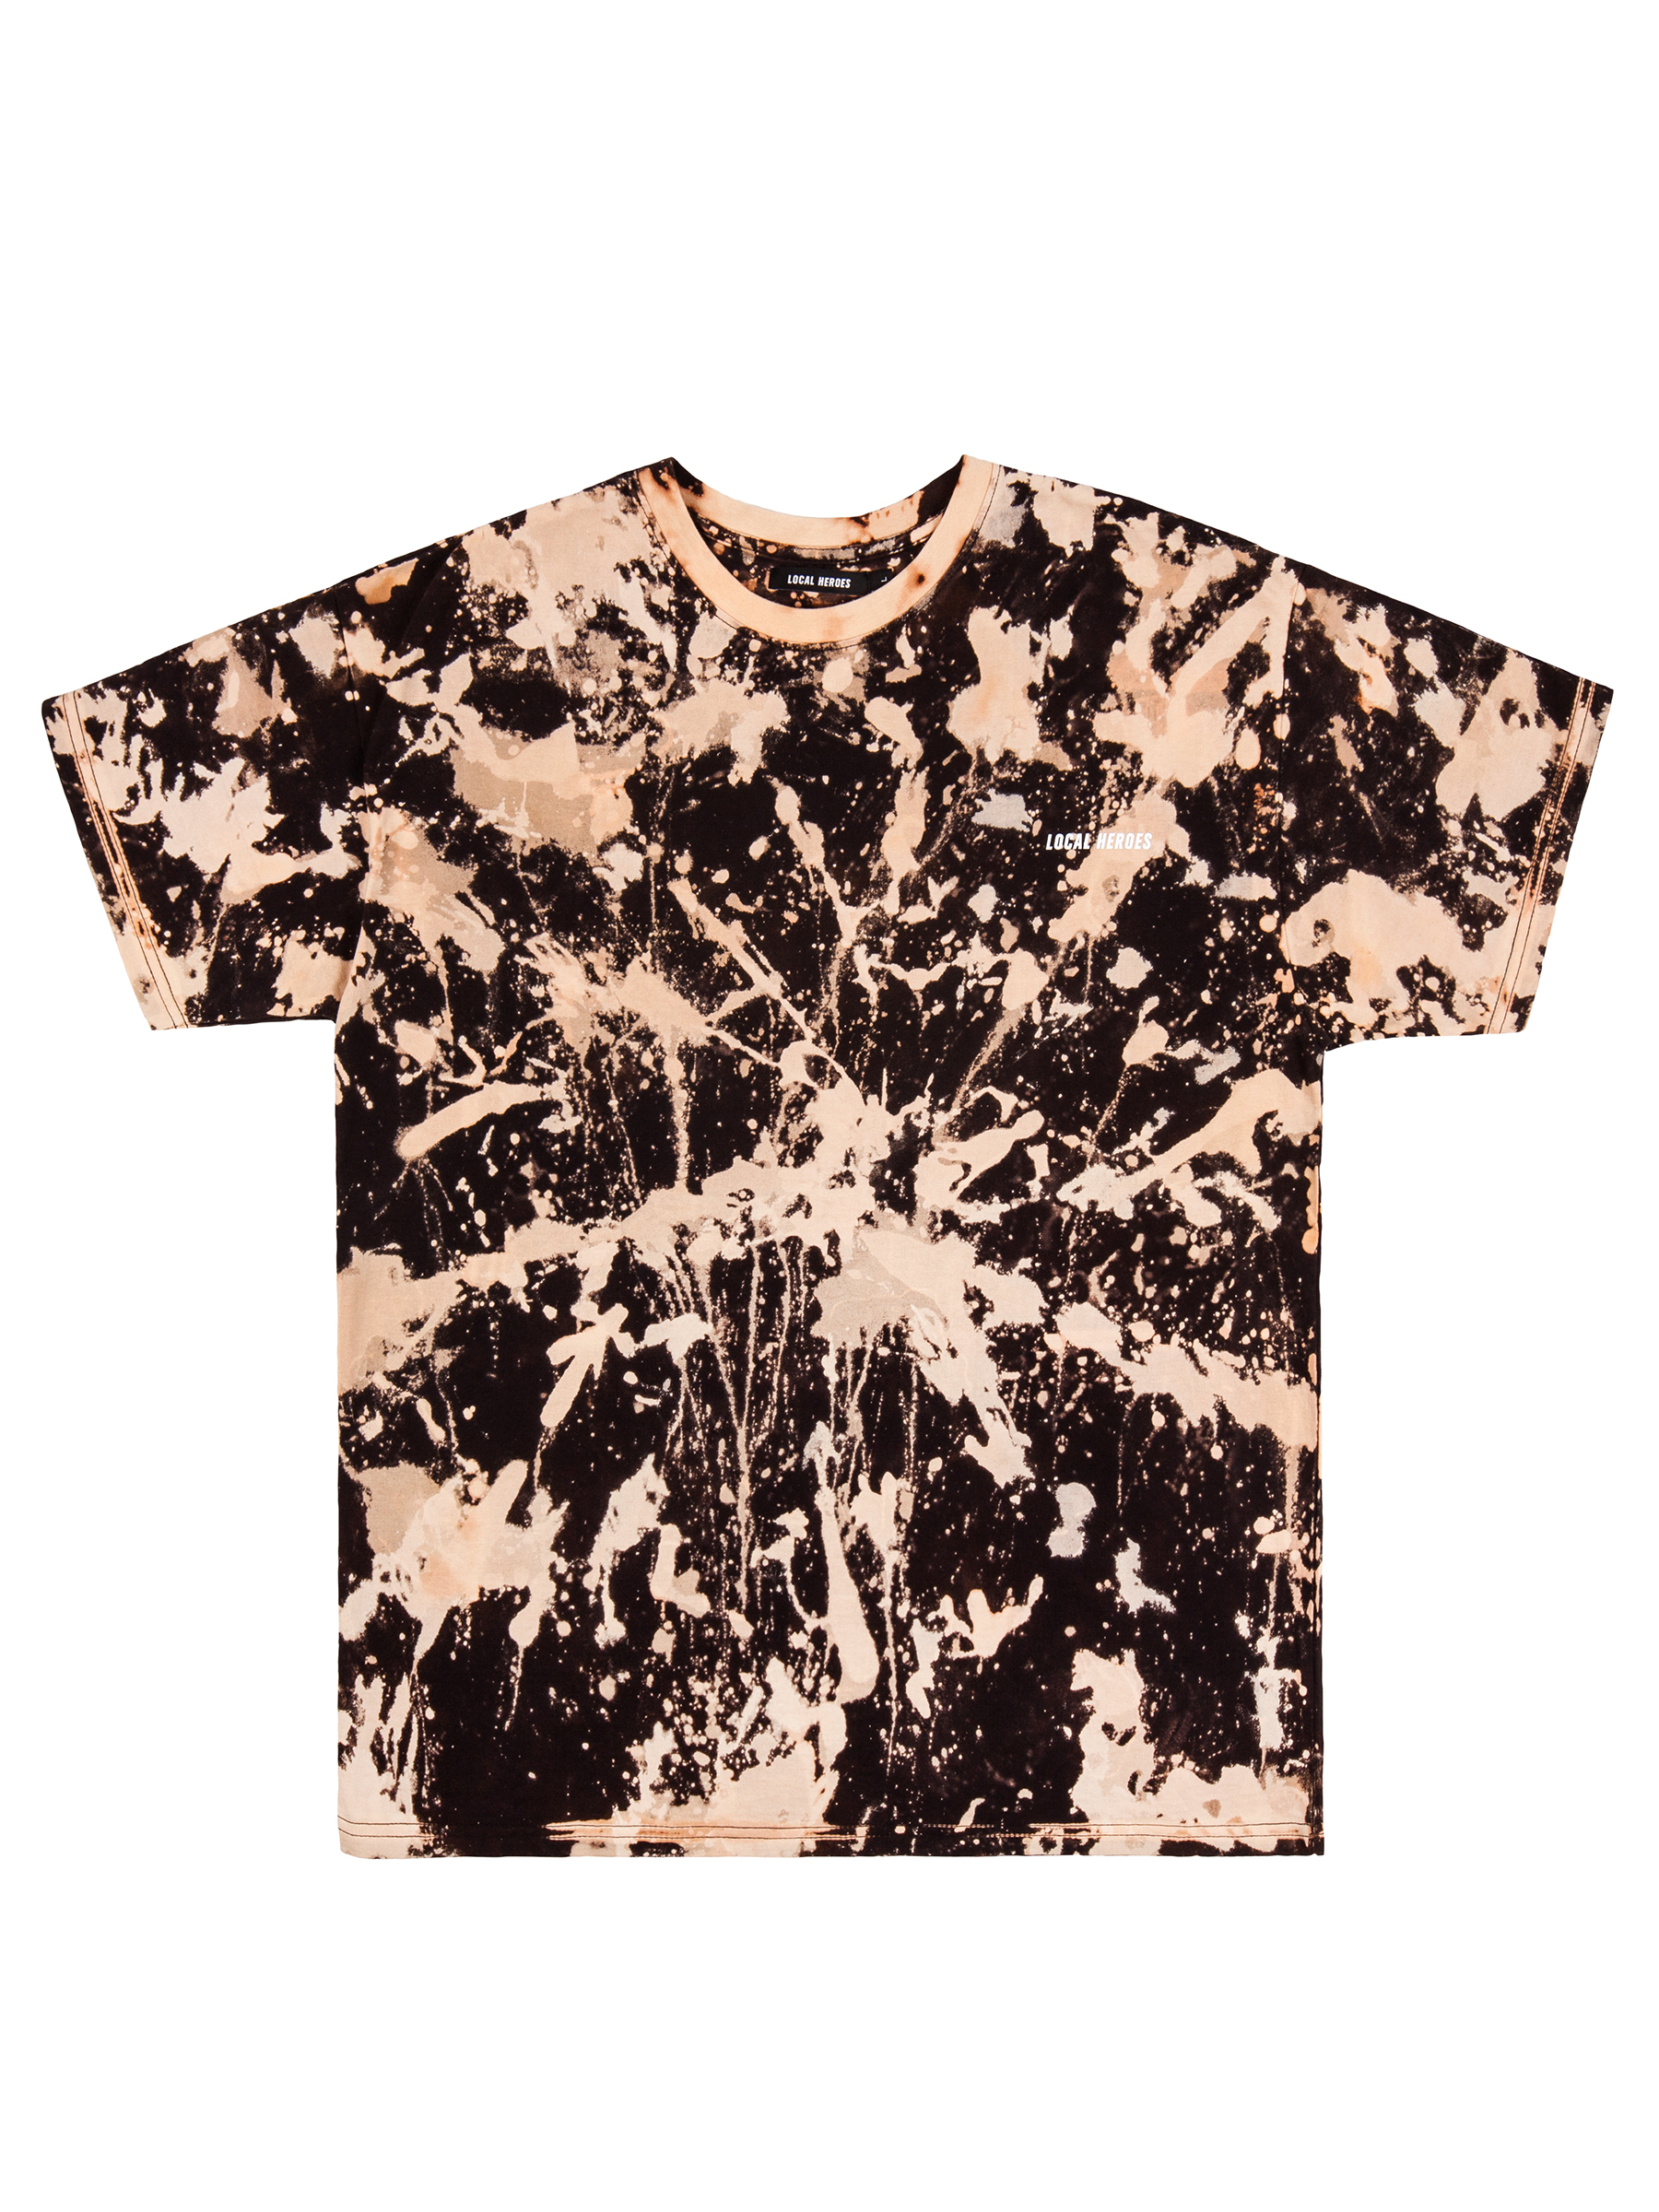 LH RATED ADULTS TIE DYE TEE